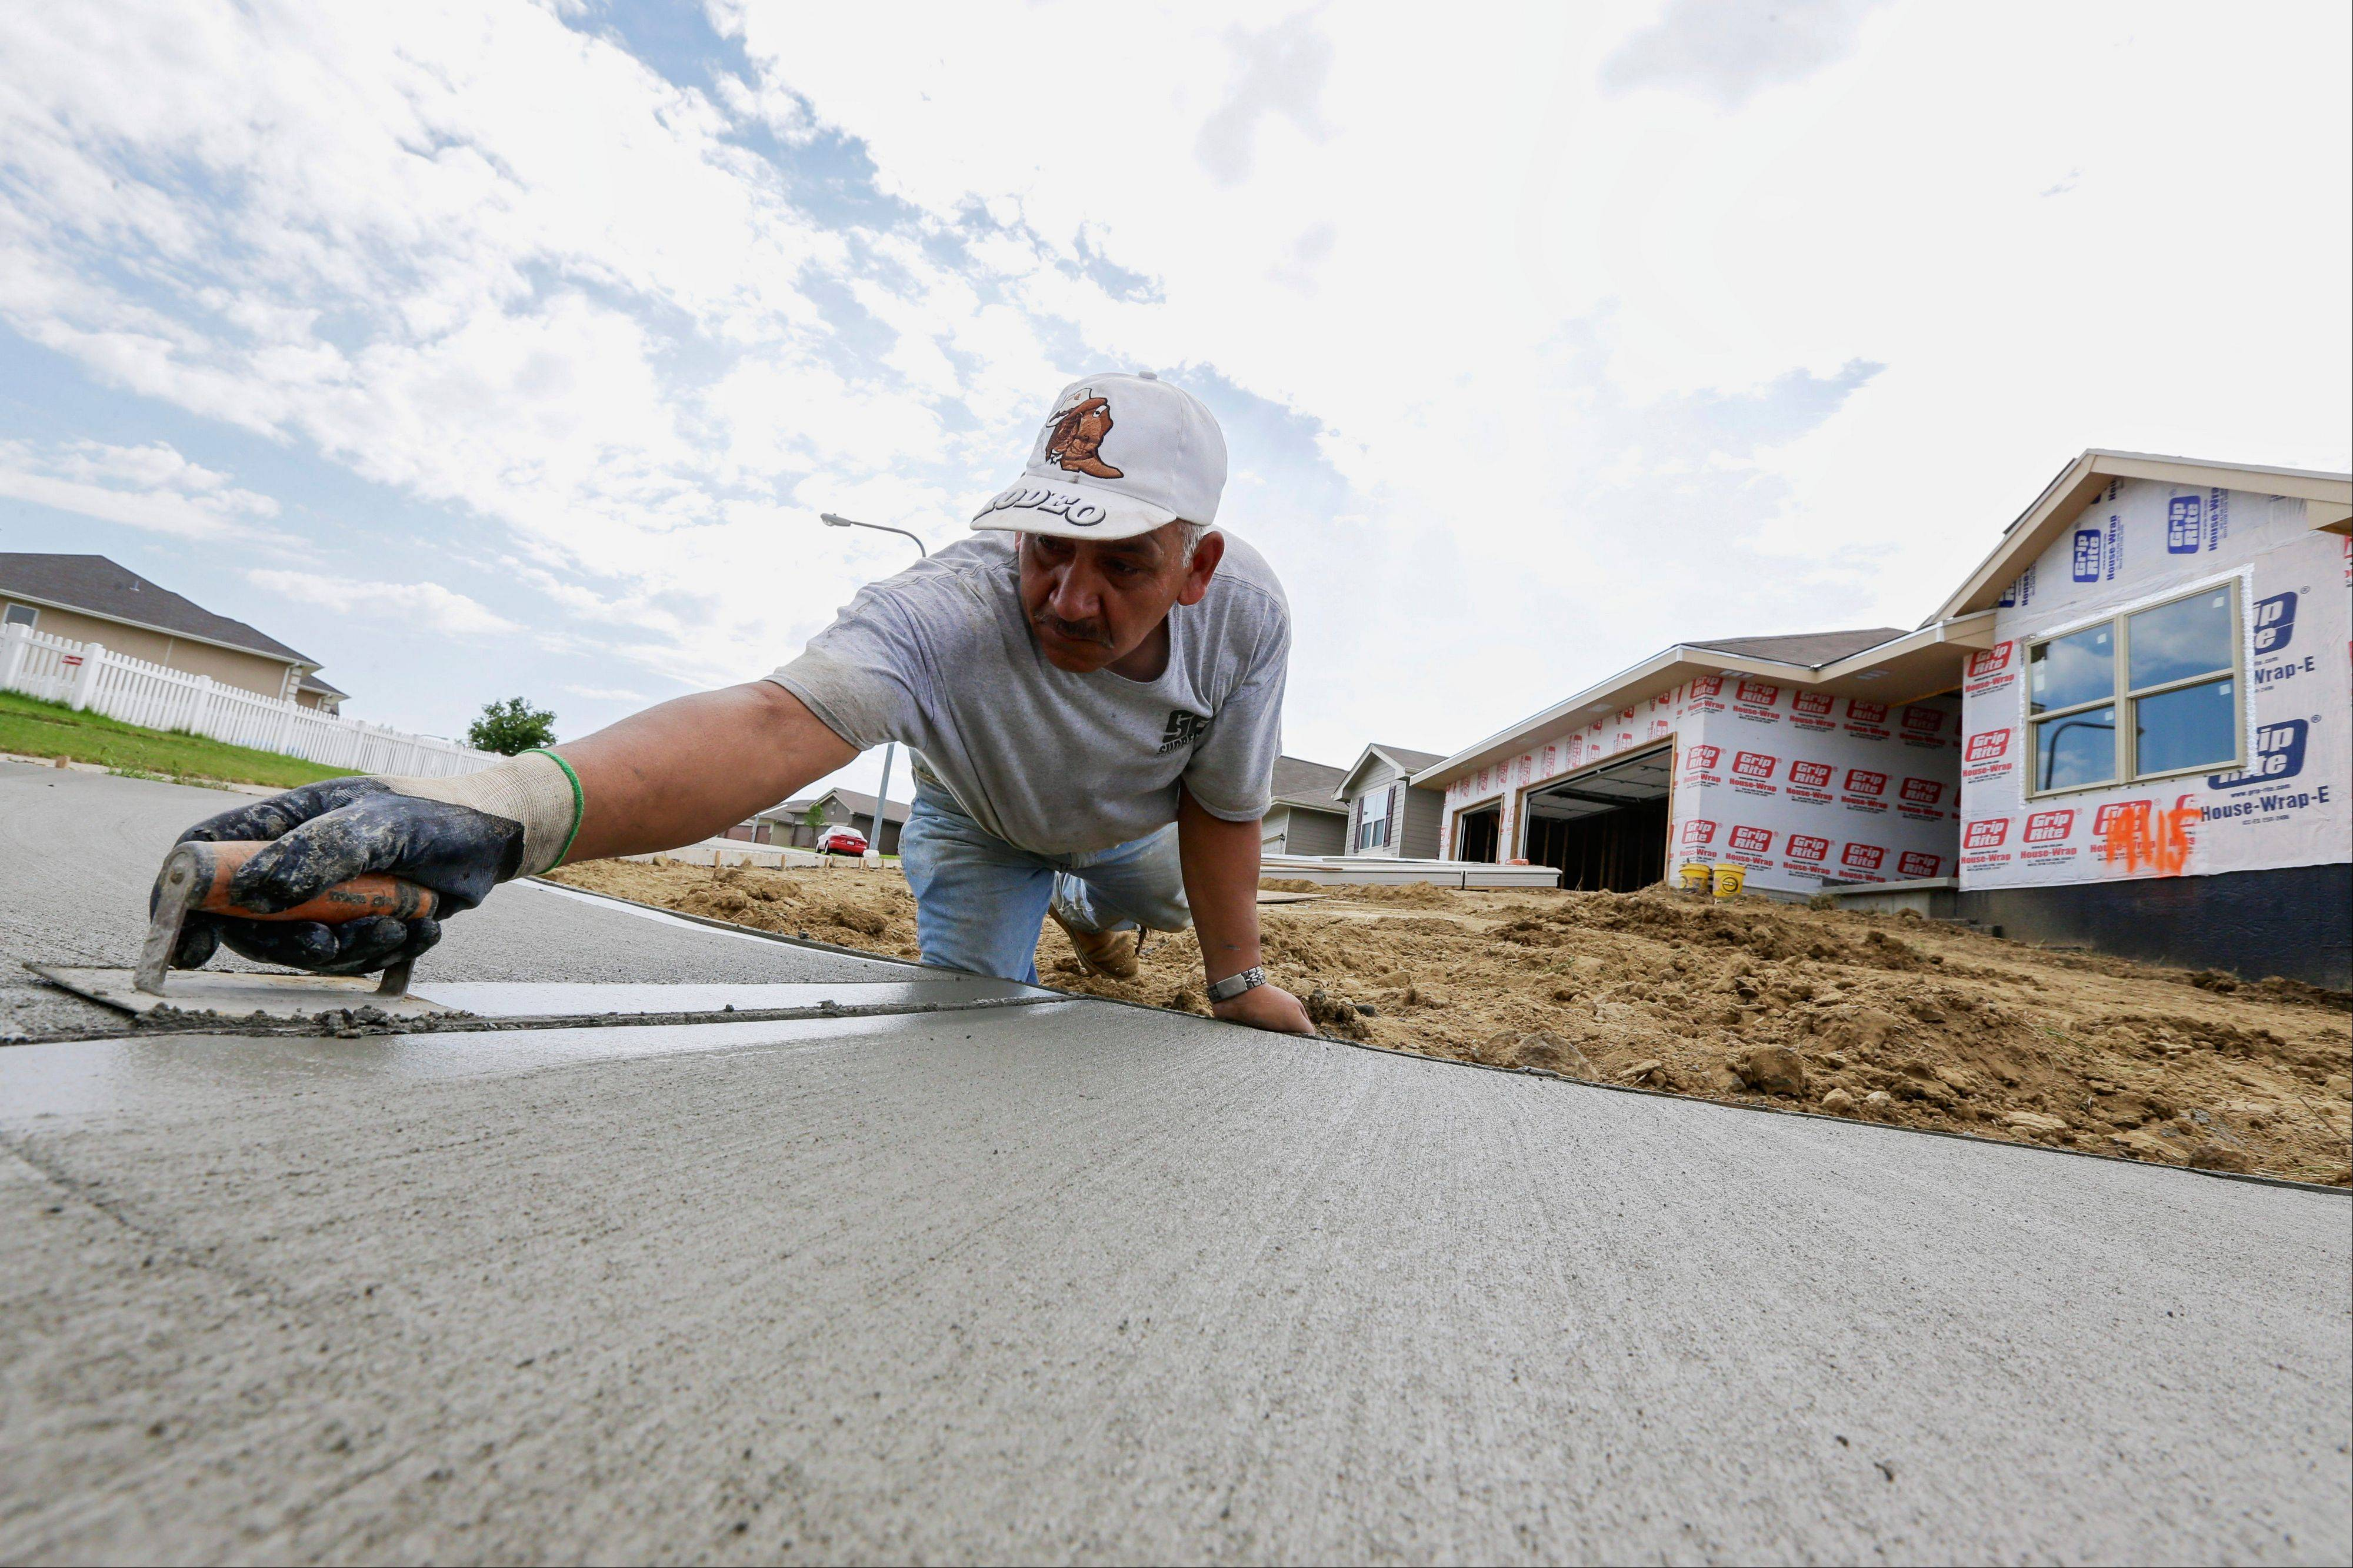 A sidewalk gets shaped Thursday in front of new construction in Omaha, Neb. Conductors of a monthly survey of business leaders in nine Midwest and Plains states say the region's economy will grow in the coming months.